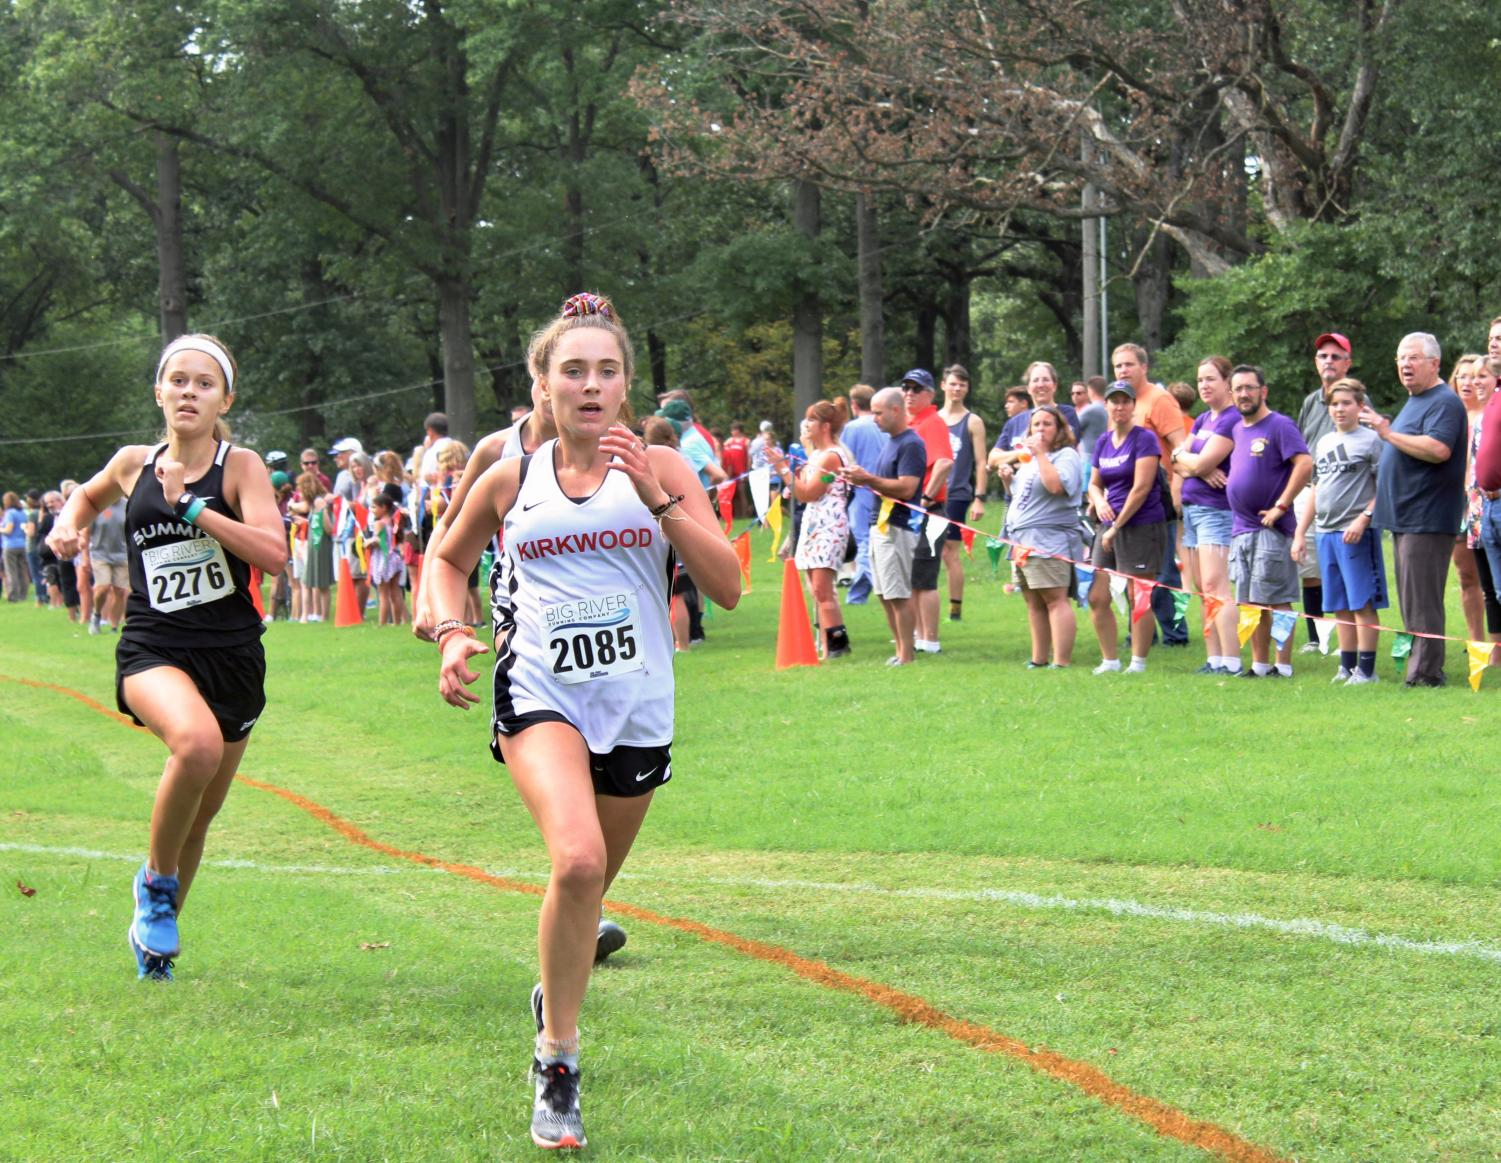 Cora+Hoeing%2C+freshman%2C+races+an+opponent+to+the+finish.